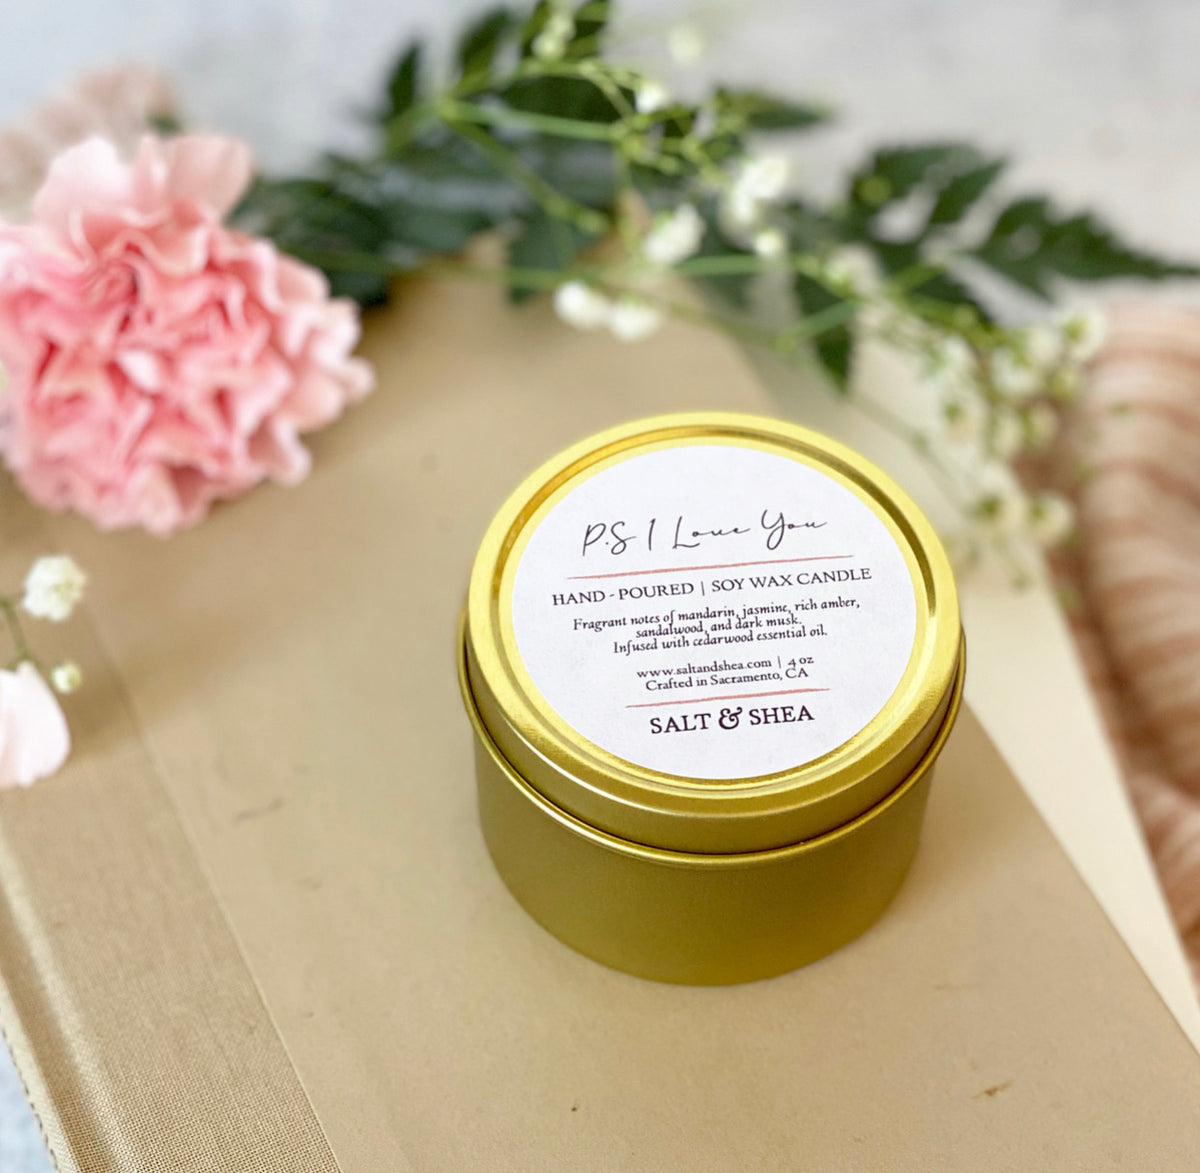 P.S. I Love You Soy Wax Candle